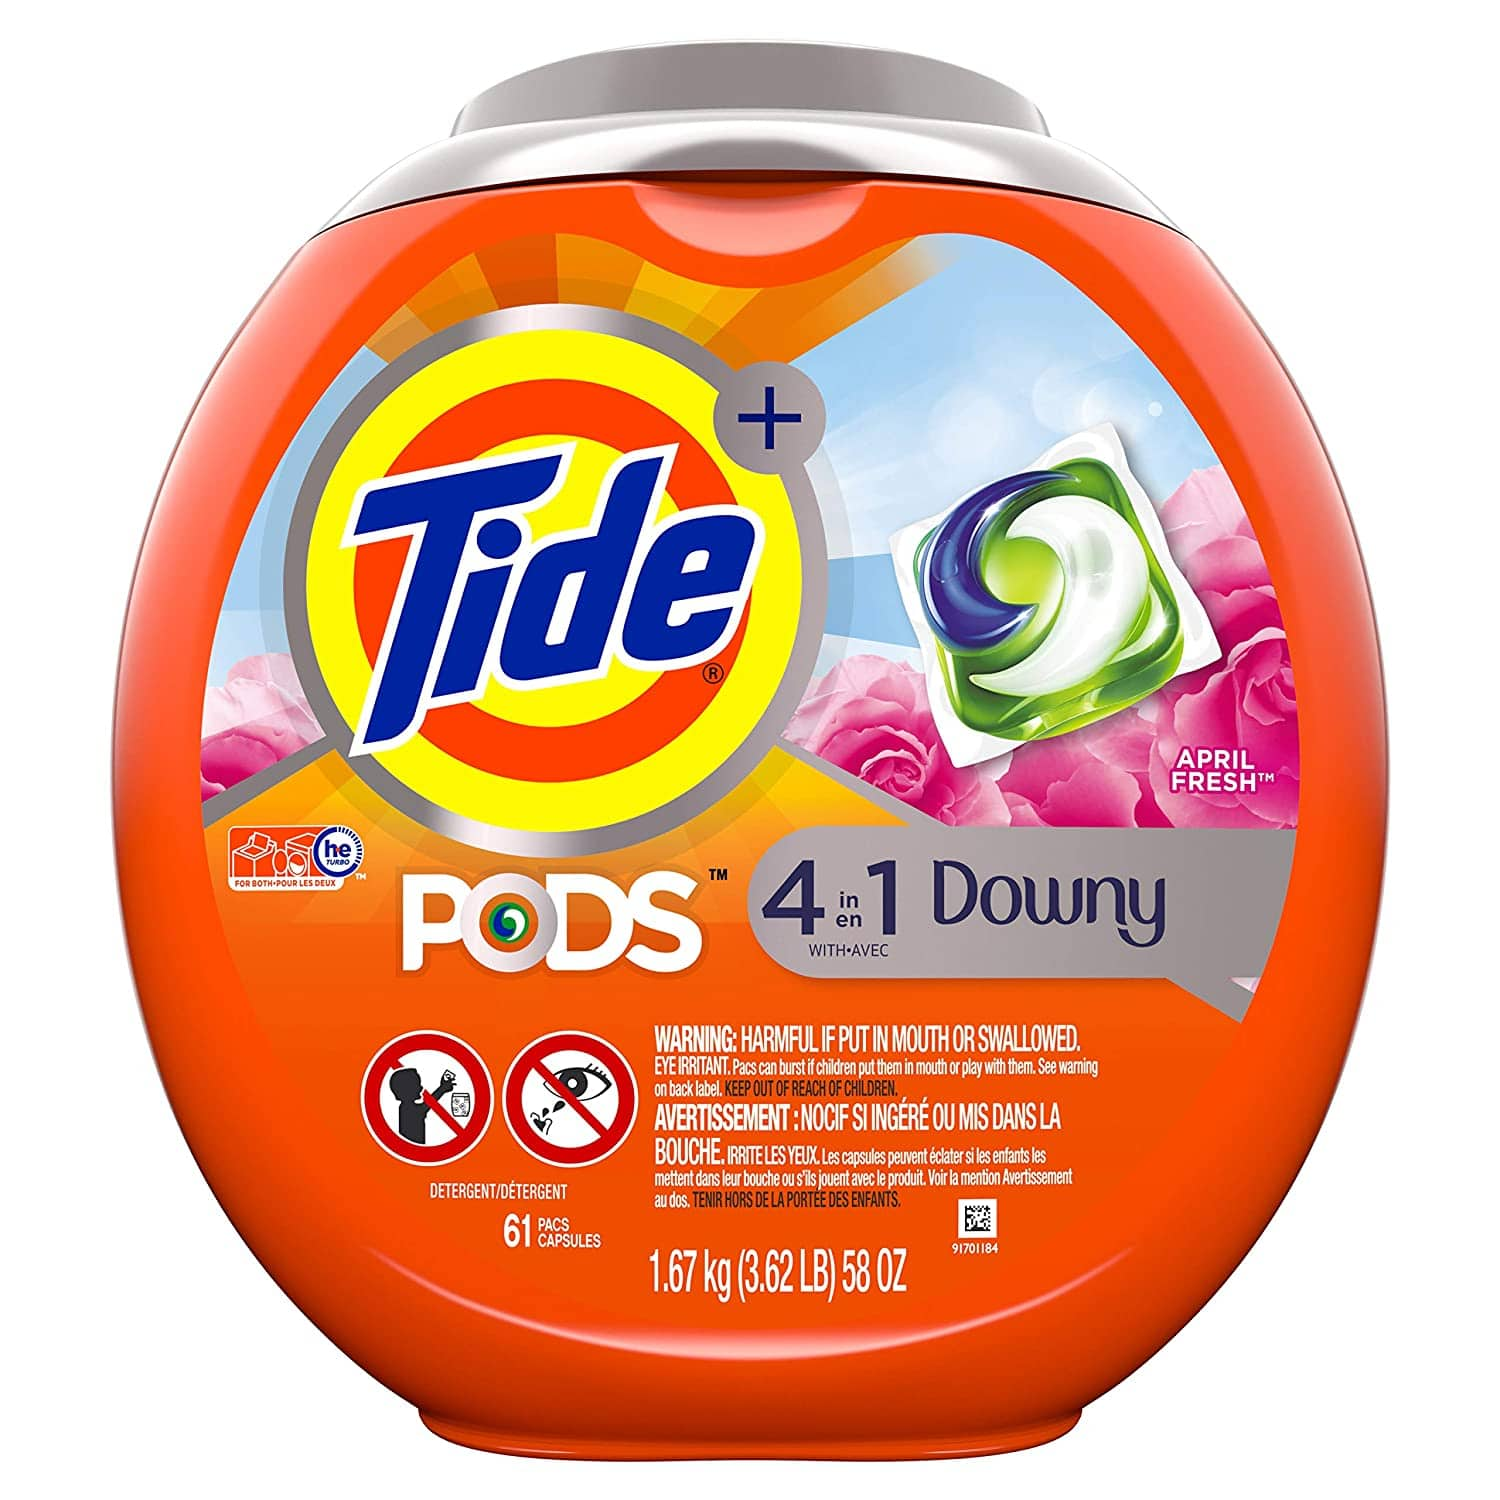 2 Quantity 61 Count Tub each  Tide PODS Plus Downy 4 in 1 HE Turbo Laundry Detergent Pacs, April Fresh Scent, $26.5